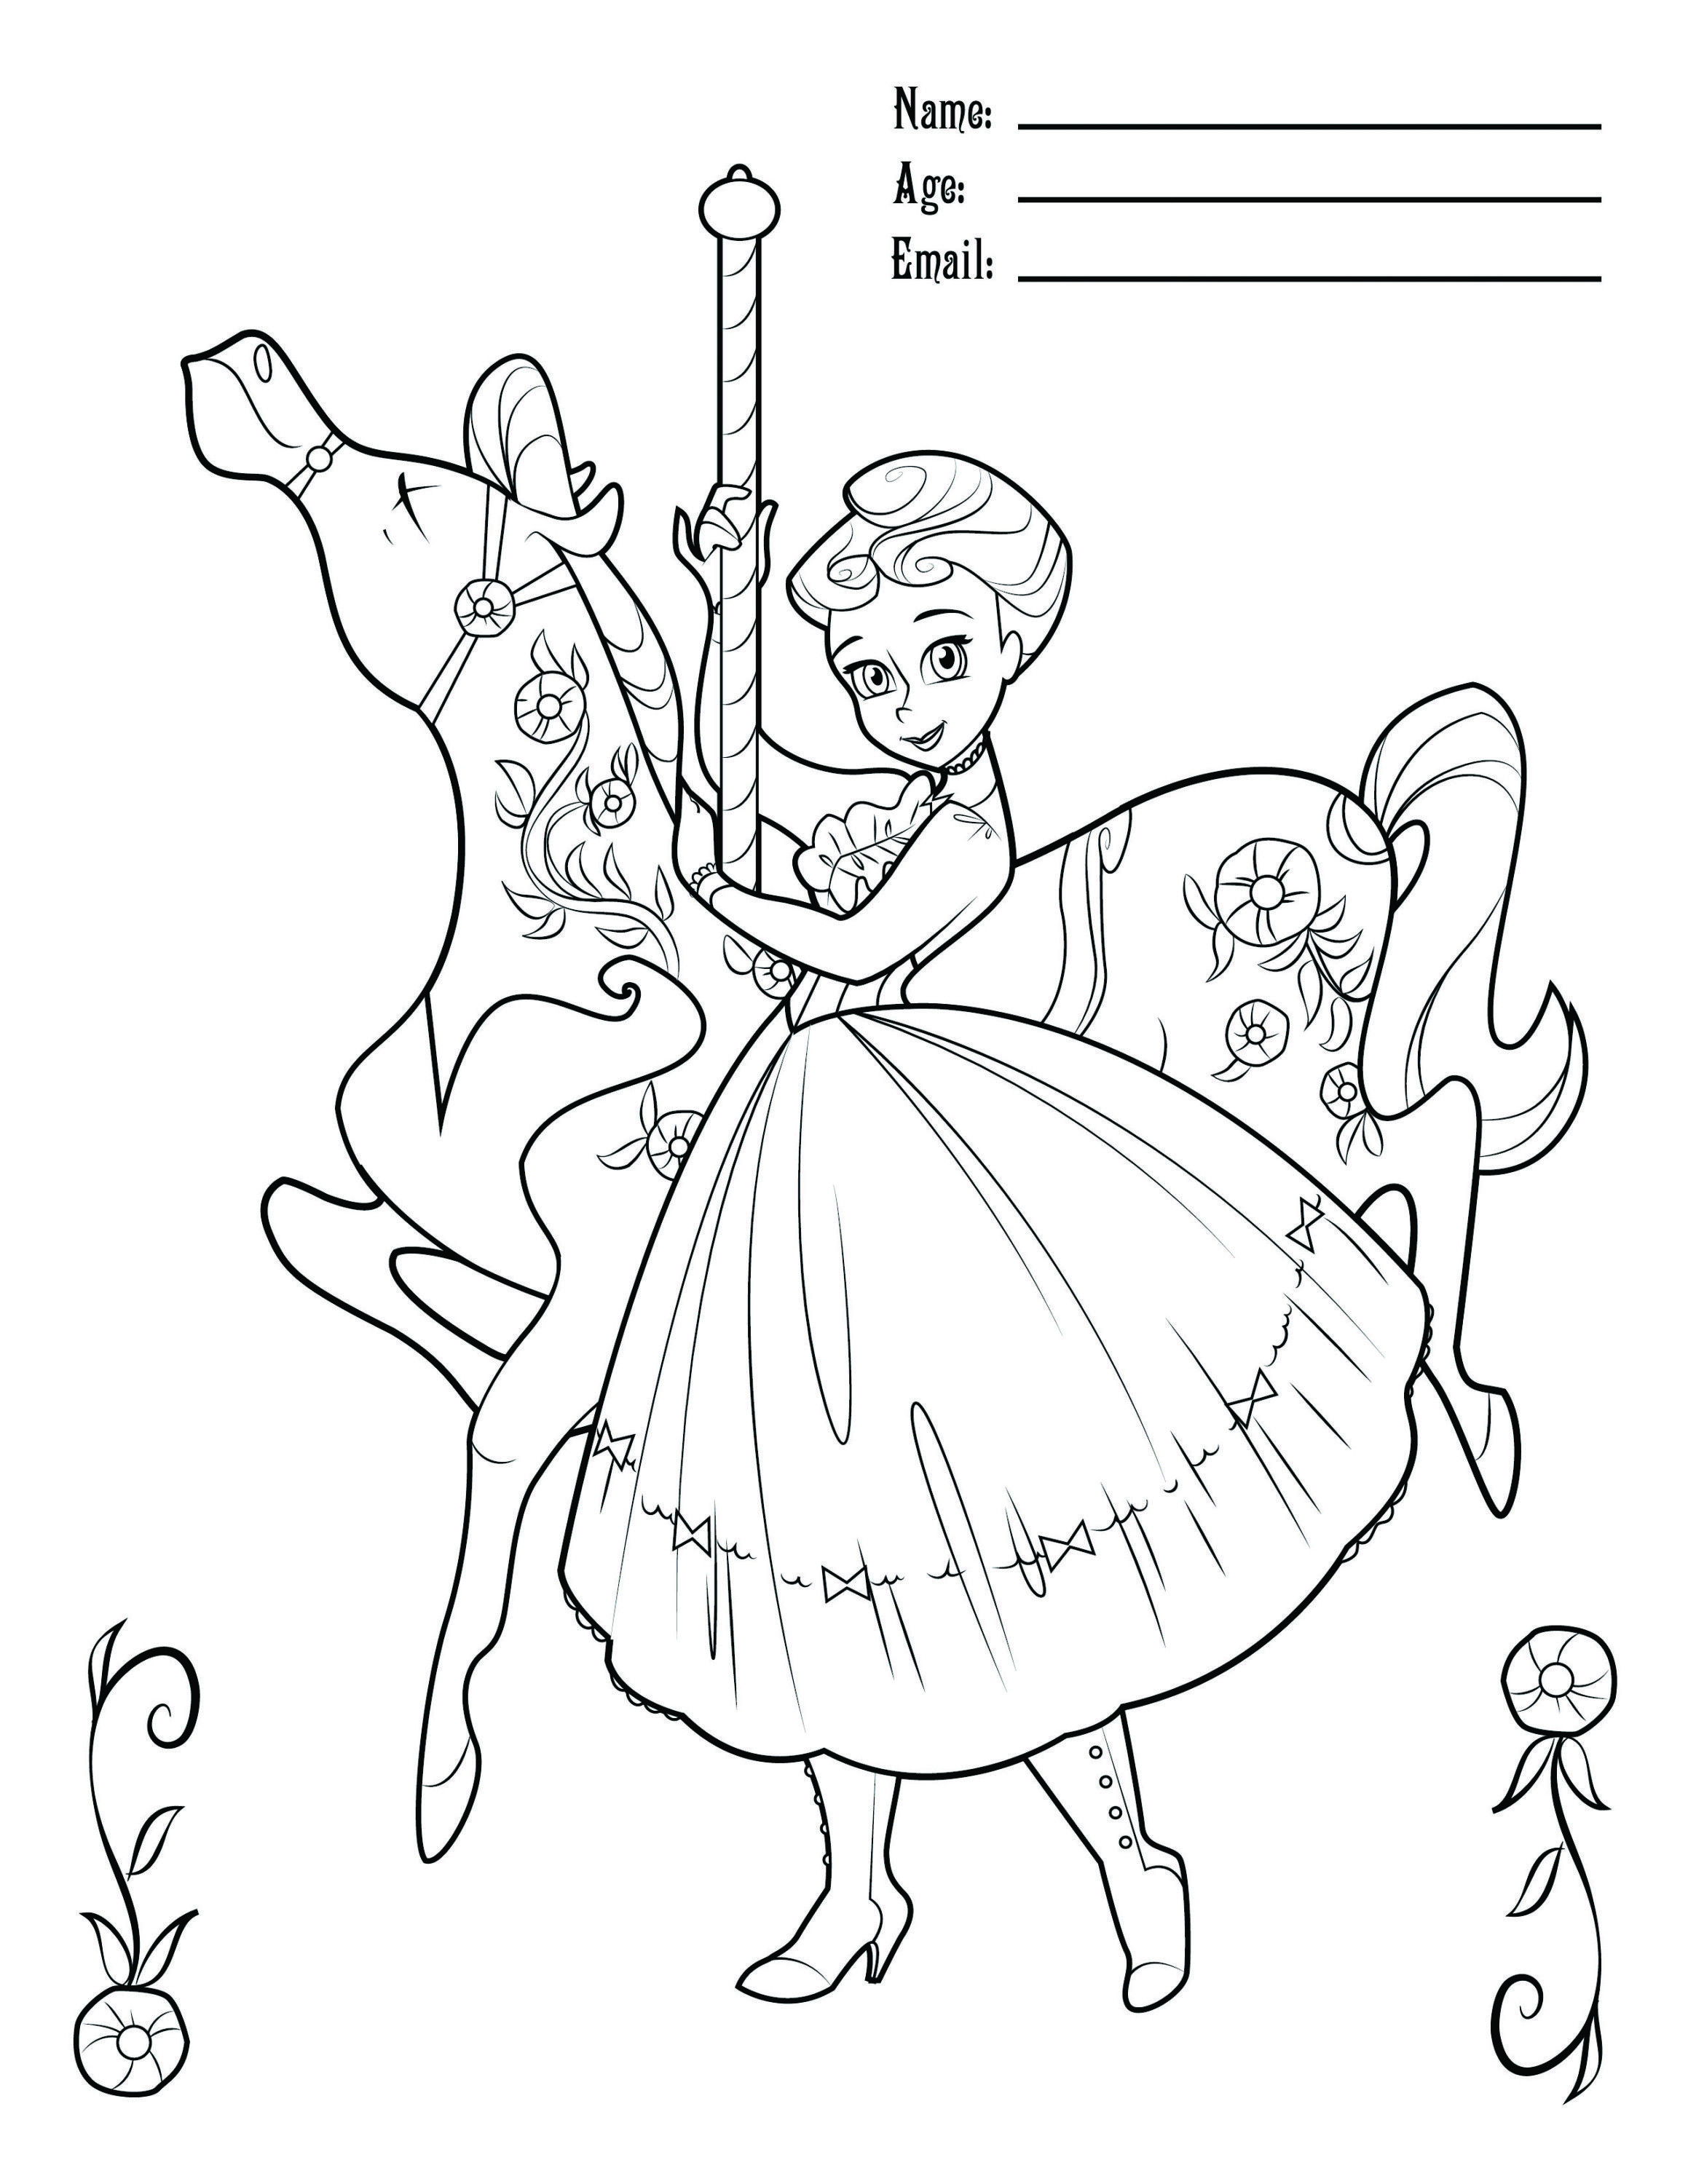 Carousel Coloring Contest Coloring Contest Cartoon Coloring